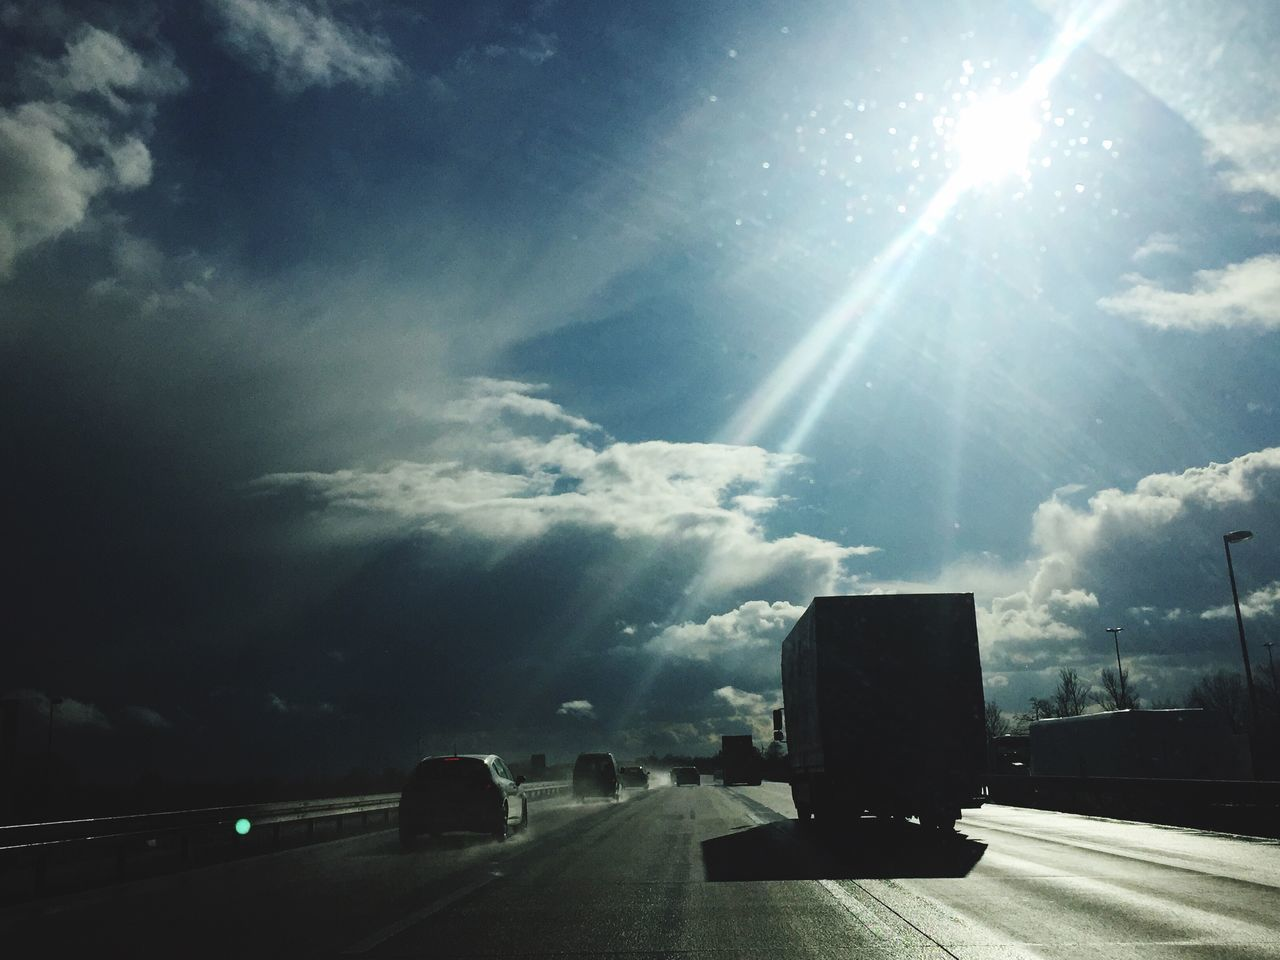 Sky Cloud - Sky Transportation Sunbeam Sunlight Lens Flare Sun Land Vehicle Nature Outdoors No People Autobahn Transportation Reflection Lkw Ontheroad Speed Shadow Speedway The Way Forward Clouds And Sky Cloudporn